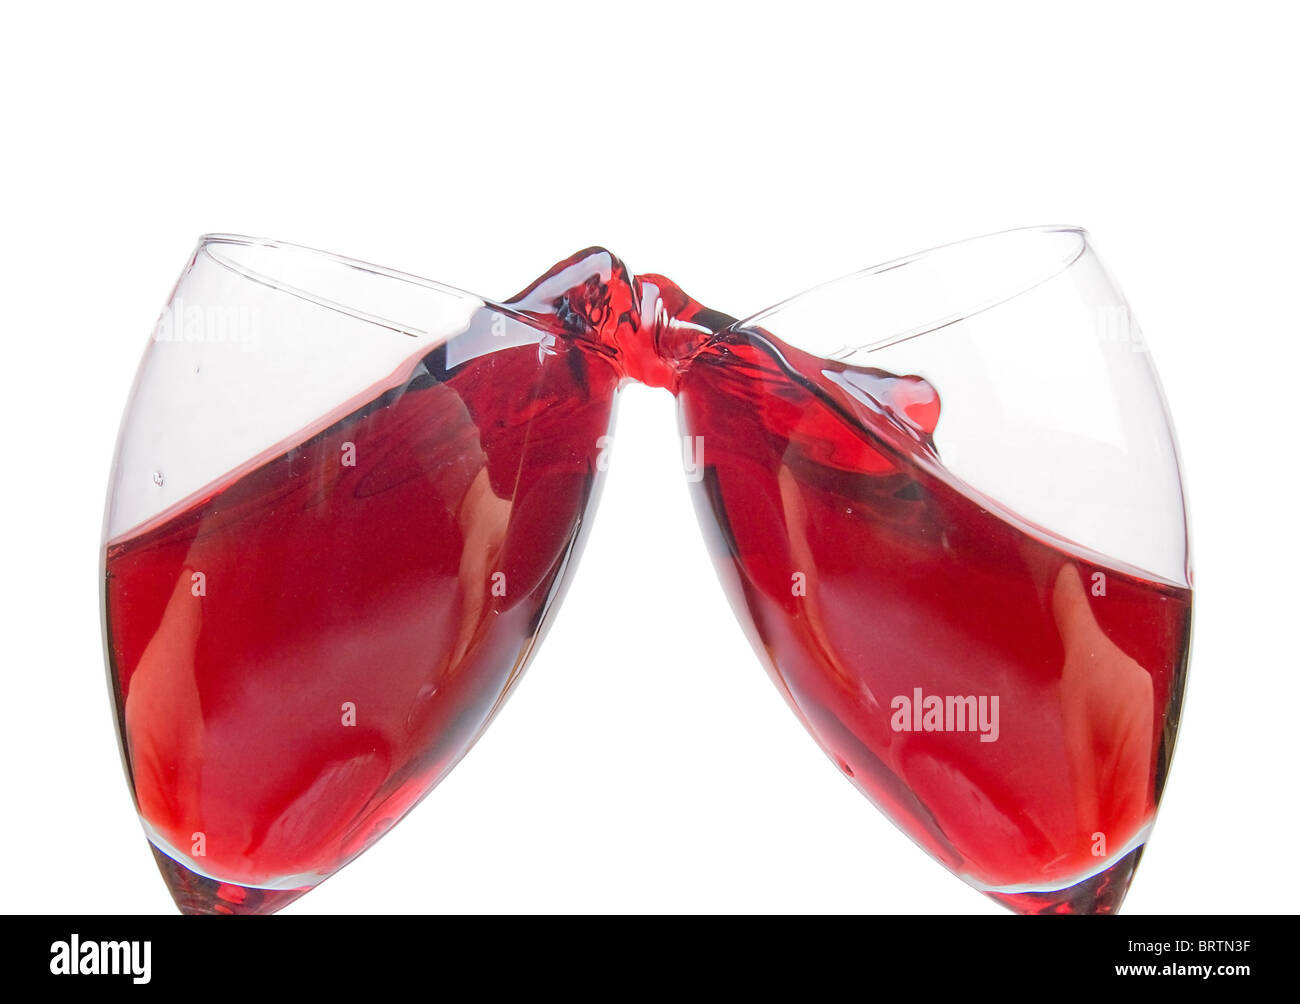 clink glasses - Stock Image